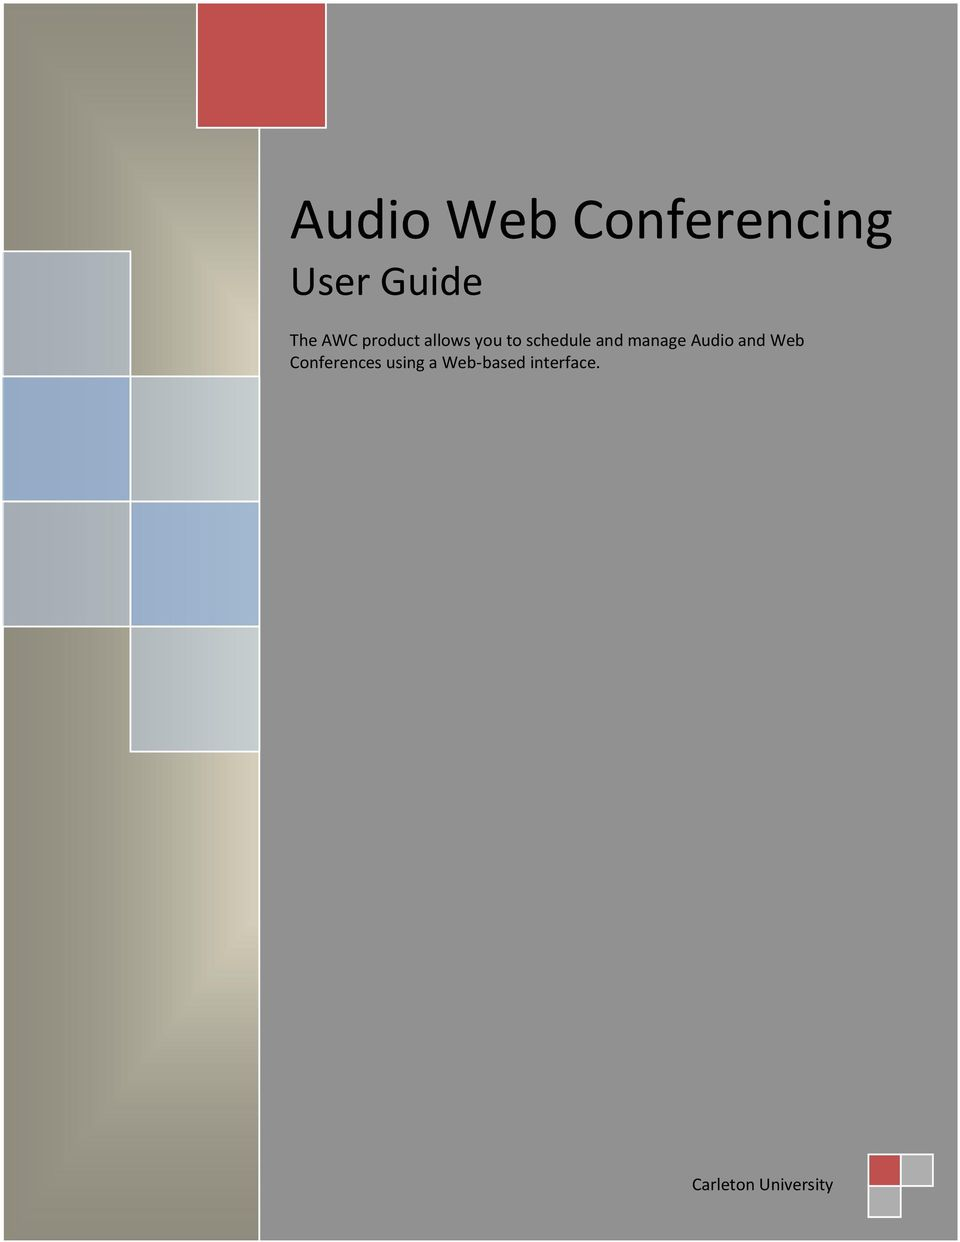 manage Audio and Web Conferences using